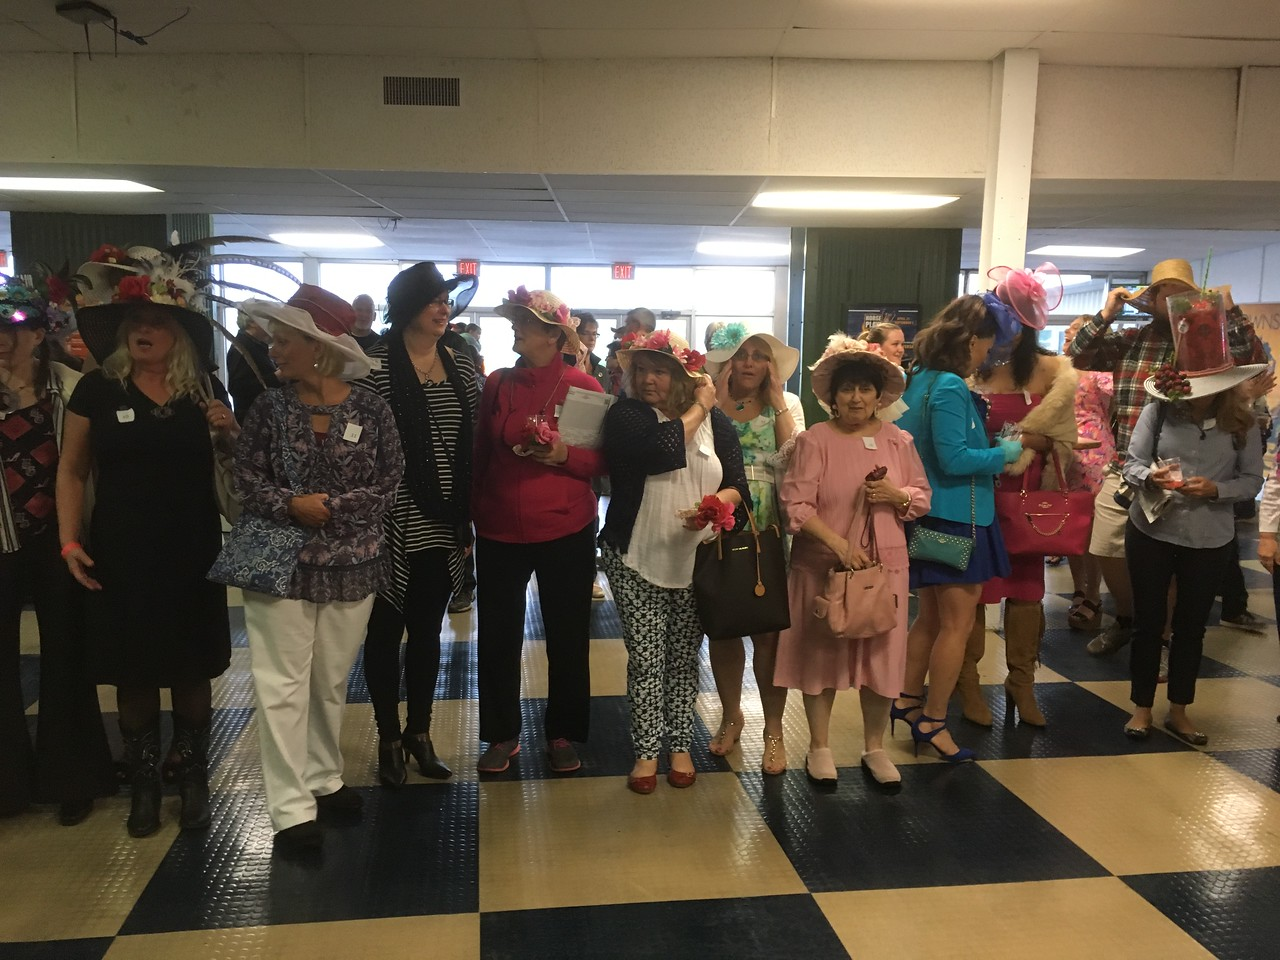 Contestants line up for the hat contest at Vernon Downs on Saturday, May 6.